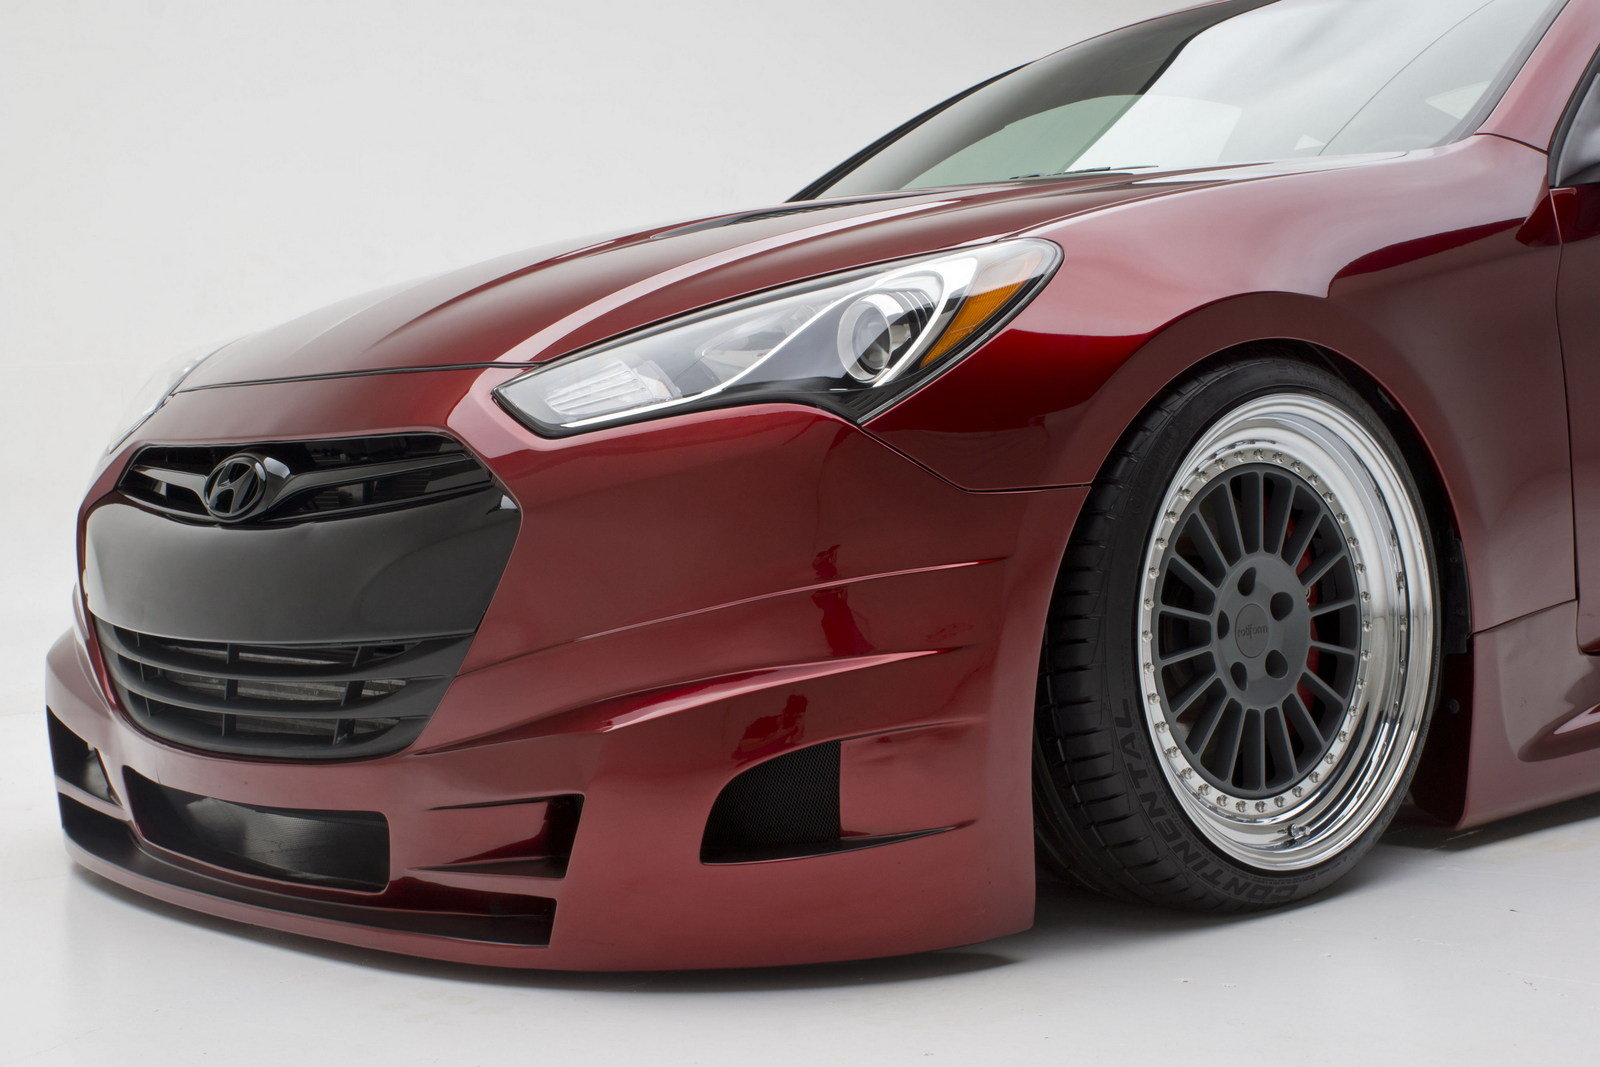 2013 hyundai genesis coupe turbo concept by fuelculture picture 480078 car review top speed. Black Bedroom Furniture Sets. Home Design Ideas